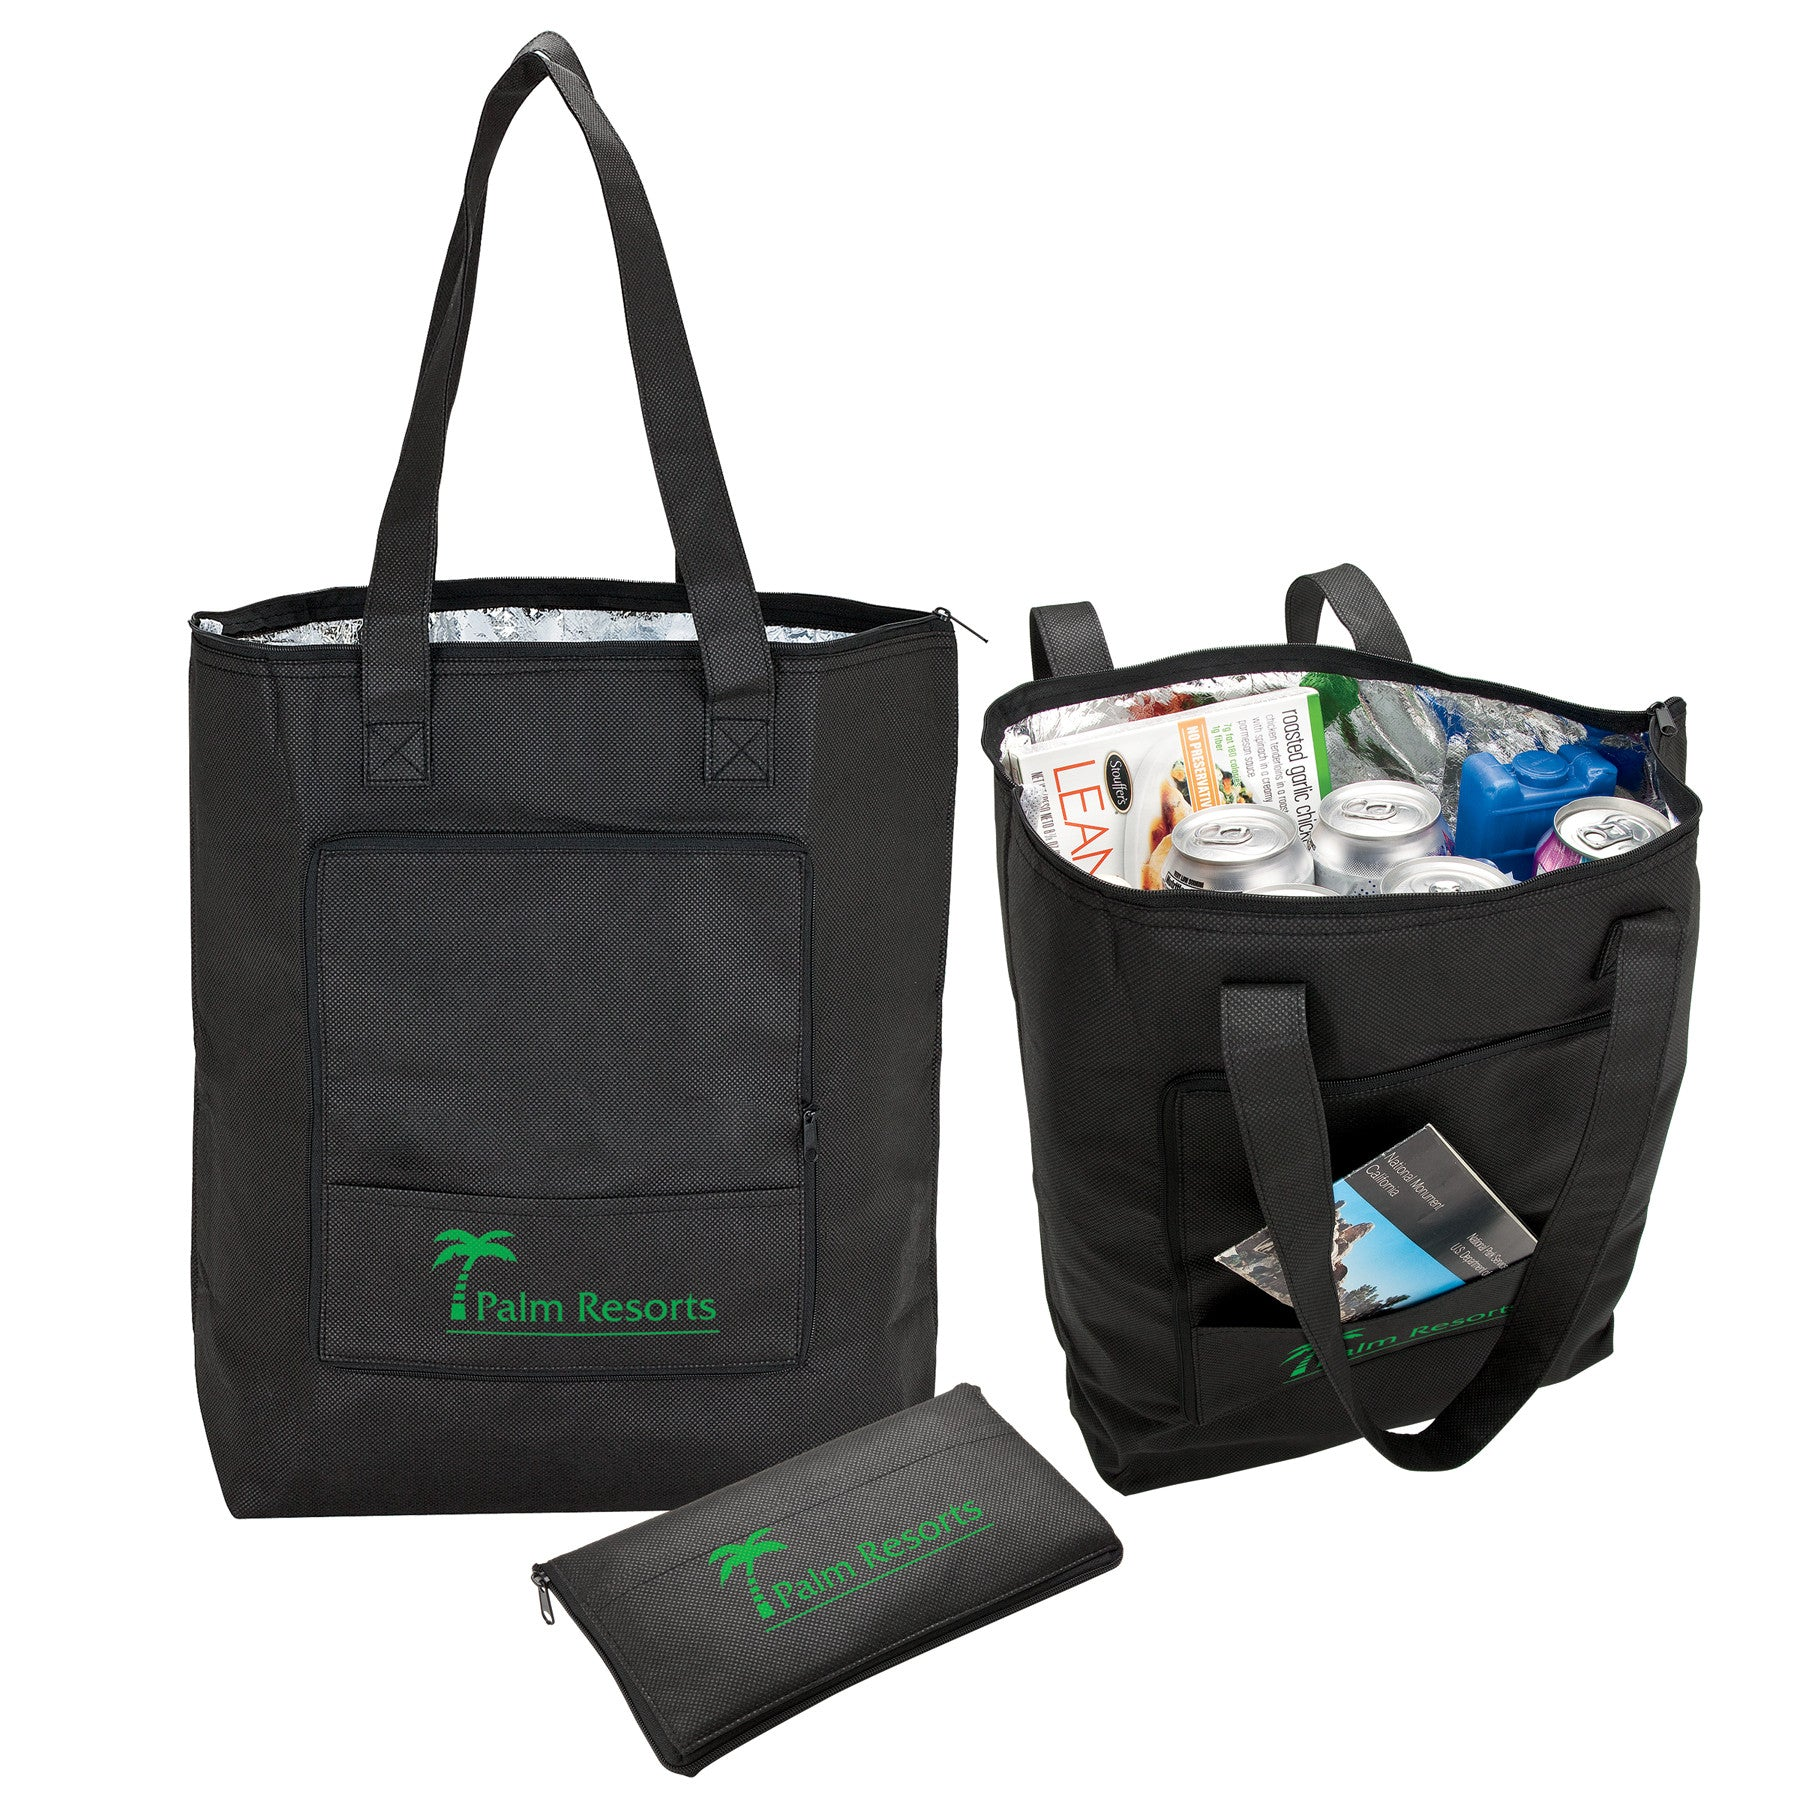 Foldaway Insulated Grocery Tote